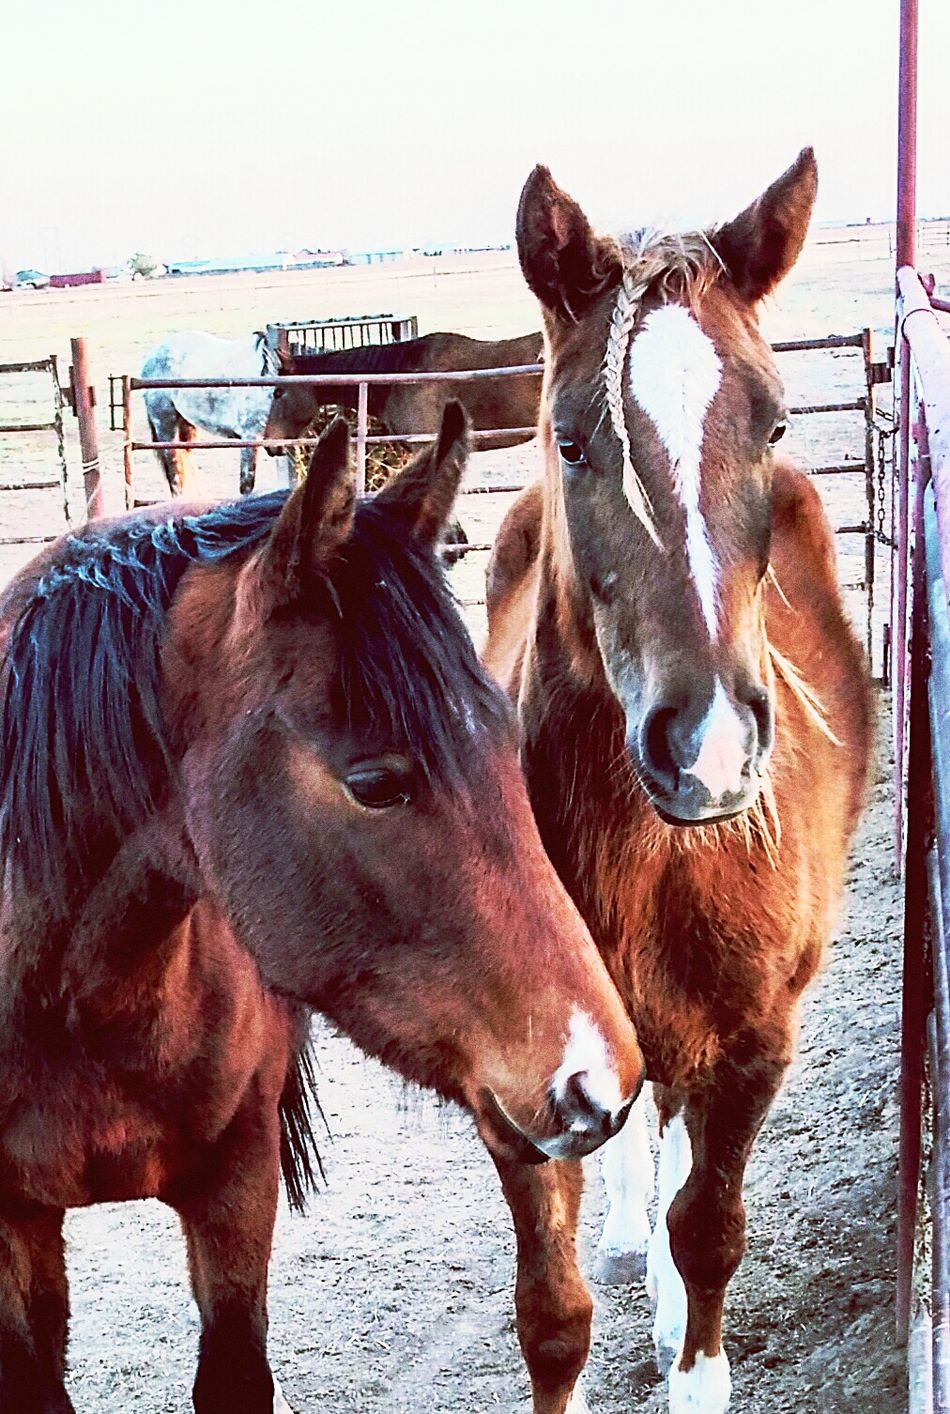 Ranch horses Horse Animal Themes Domestic Animals Mammal Brown Livestock Herbivorous Working Animal No People Nature Day Adult Animal Outdoors Sky Togetherness Close-up Barn Ranch Ranch Life Farm Cowboy Country Life Stable Mane Paddock